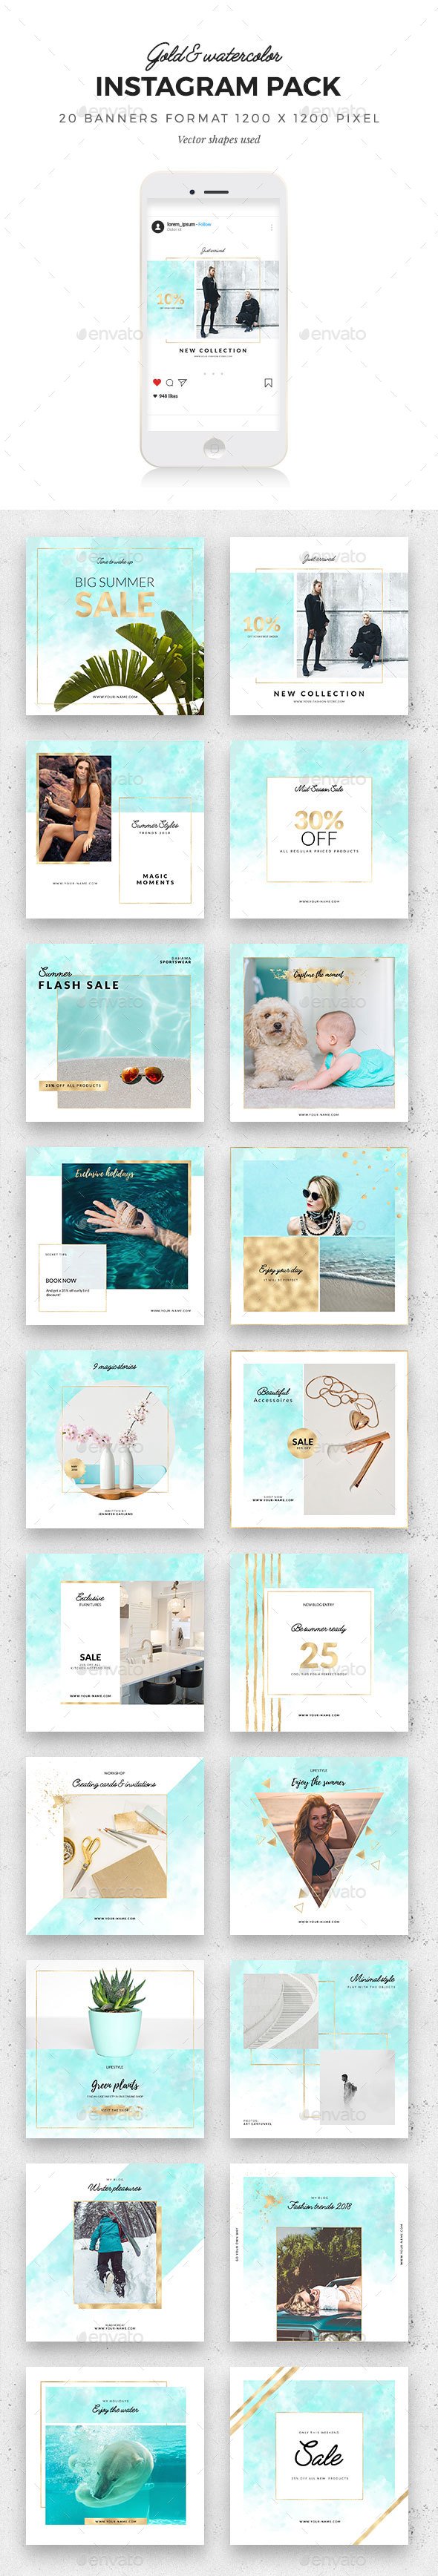 Gold & Watercolor Instagram Pack - Social Media Web Elements